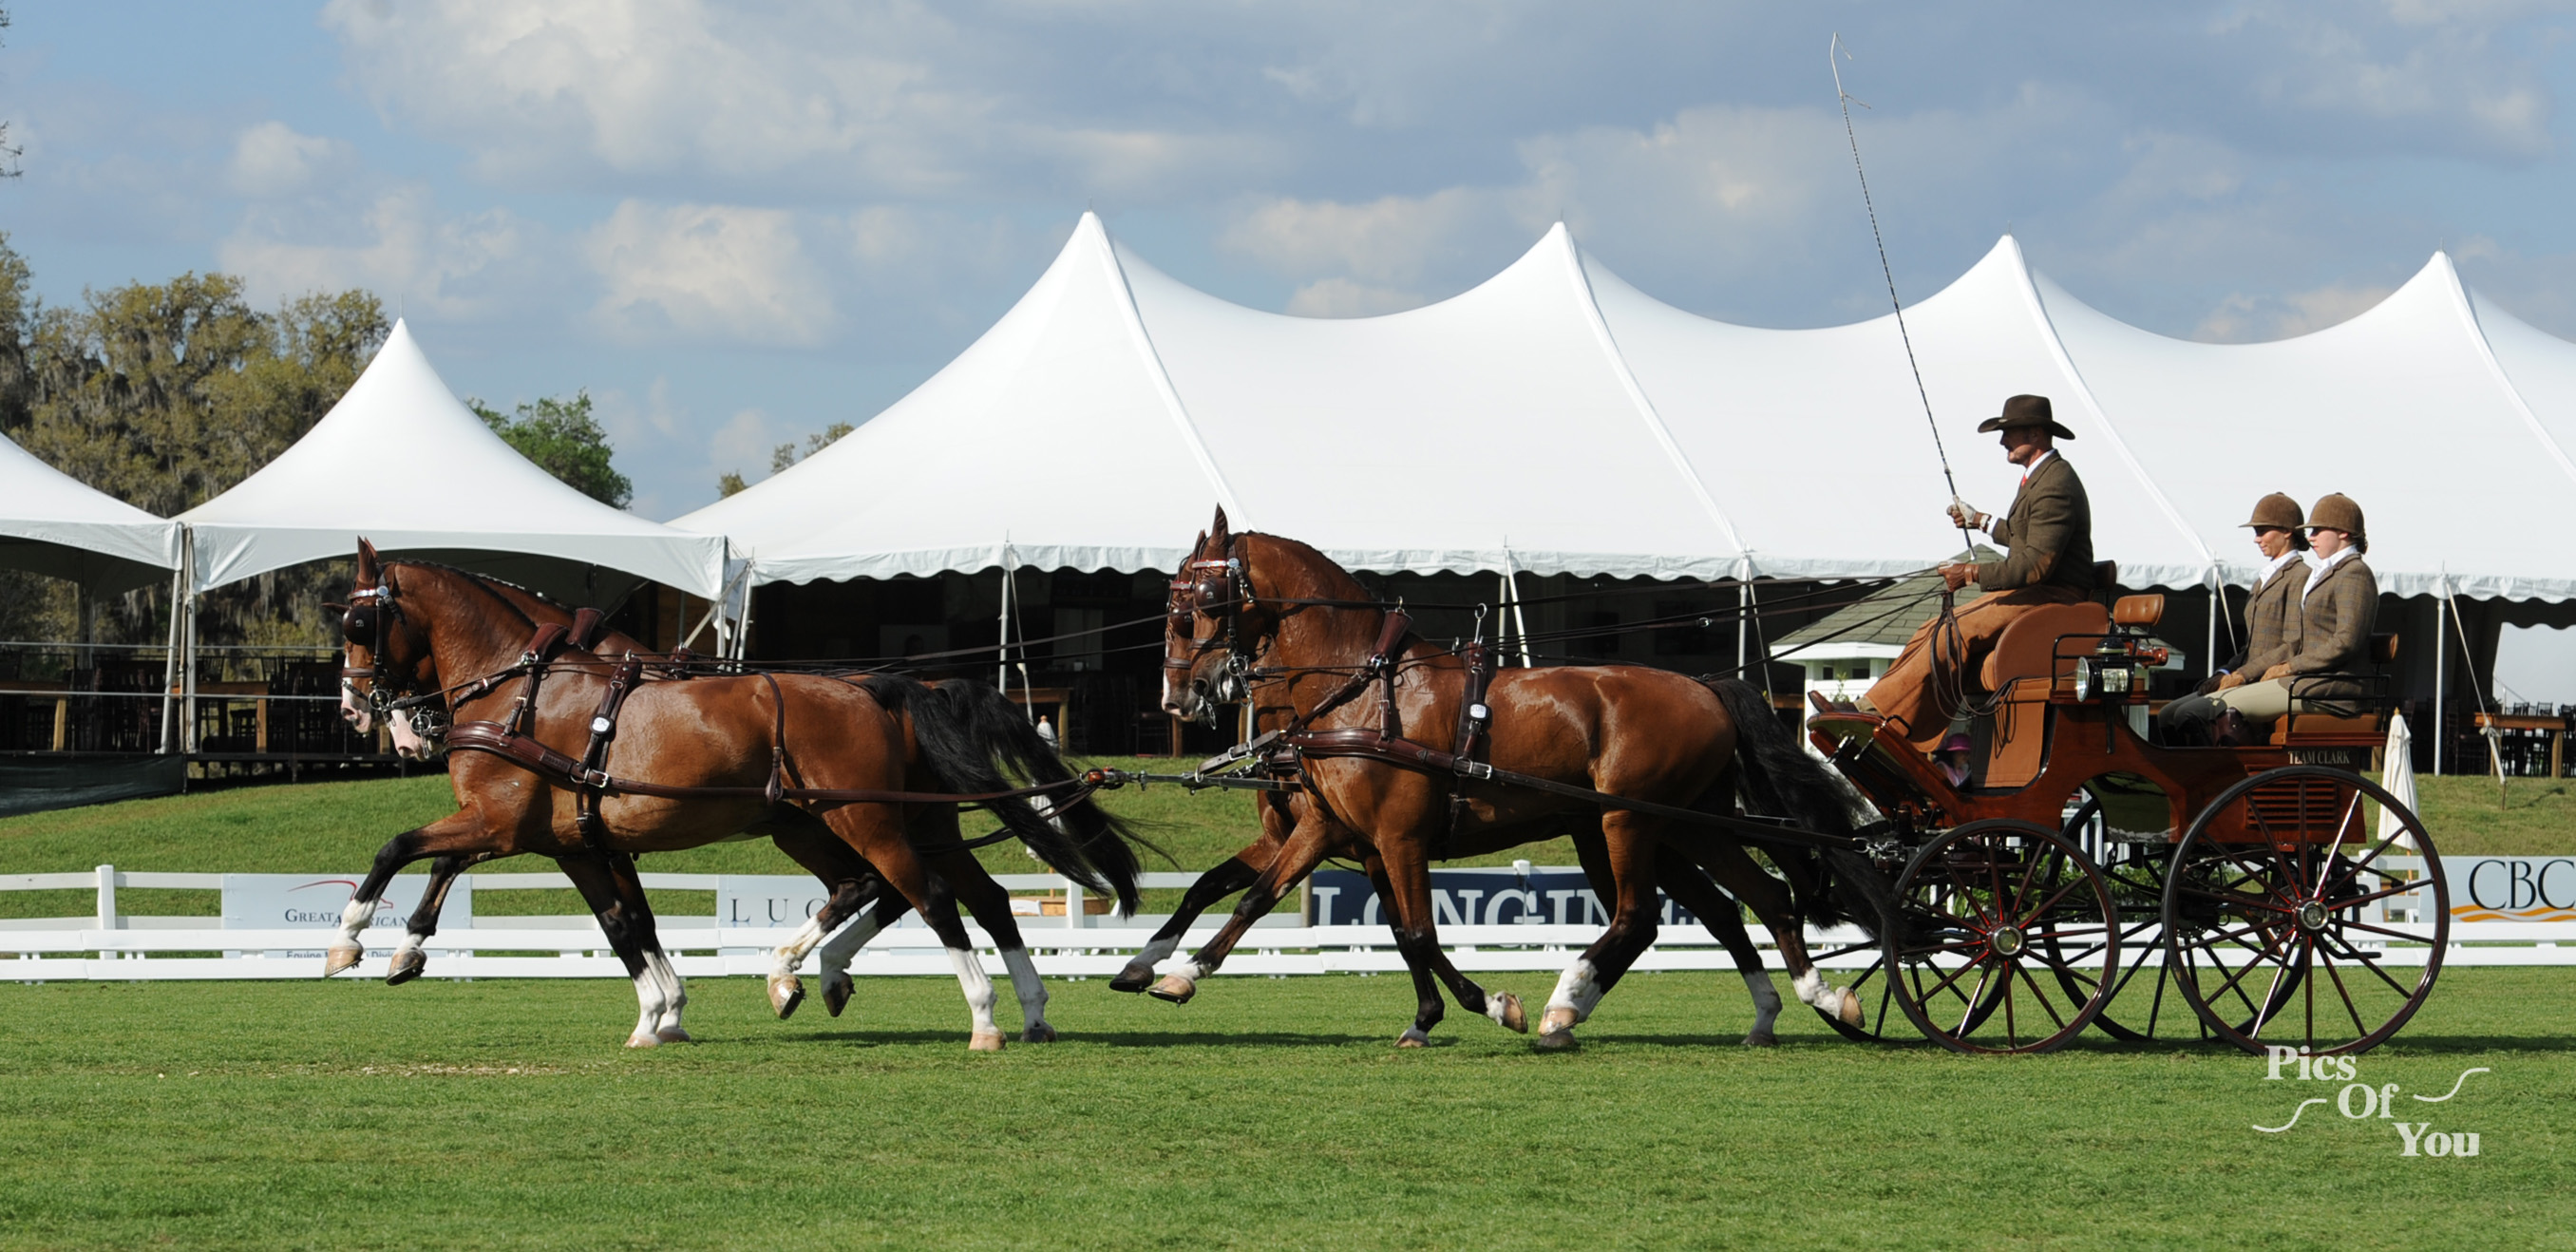 Weber, Miller, Morgan and Whaley Lead USEF Driving Championships Following Dressage at Live Oak International